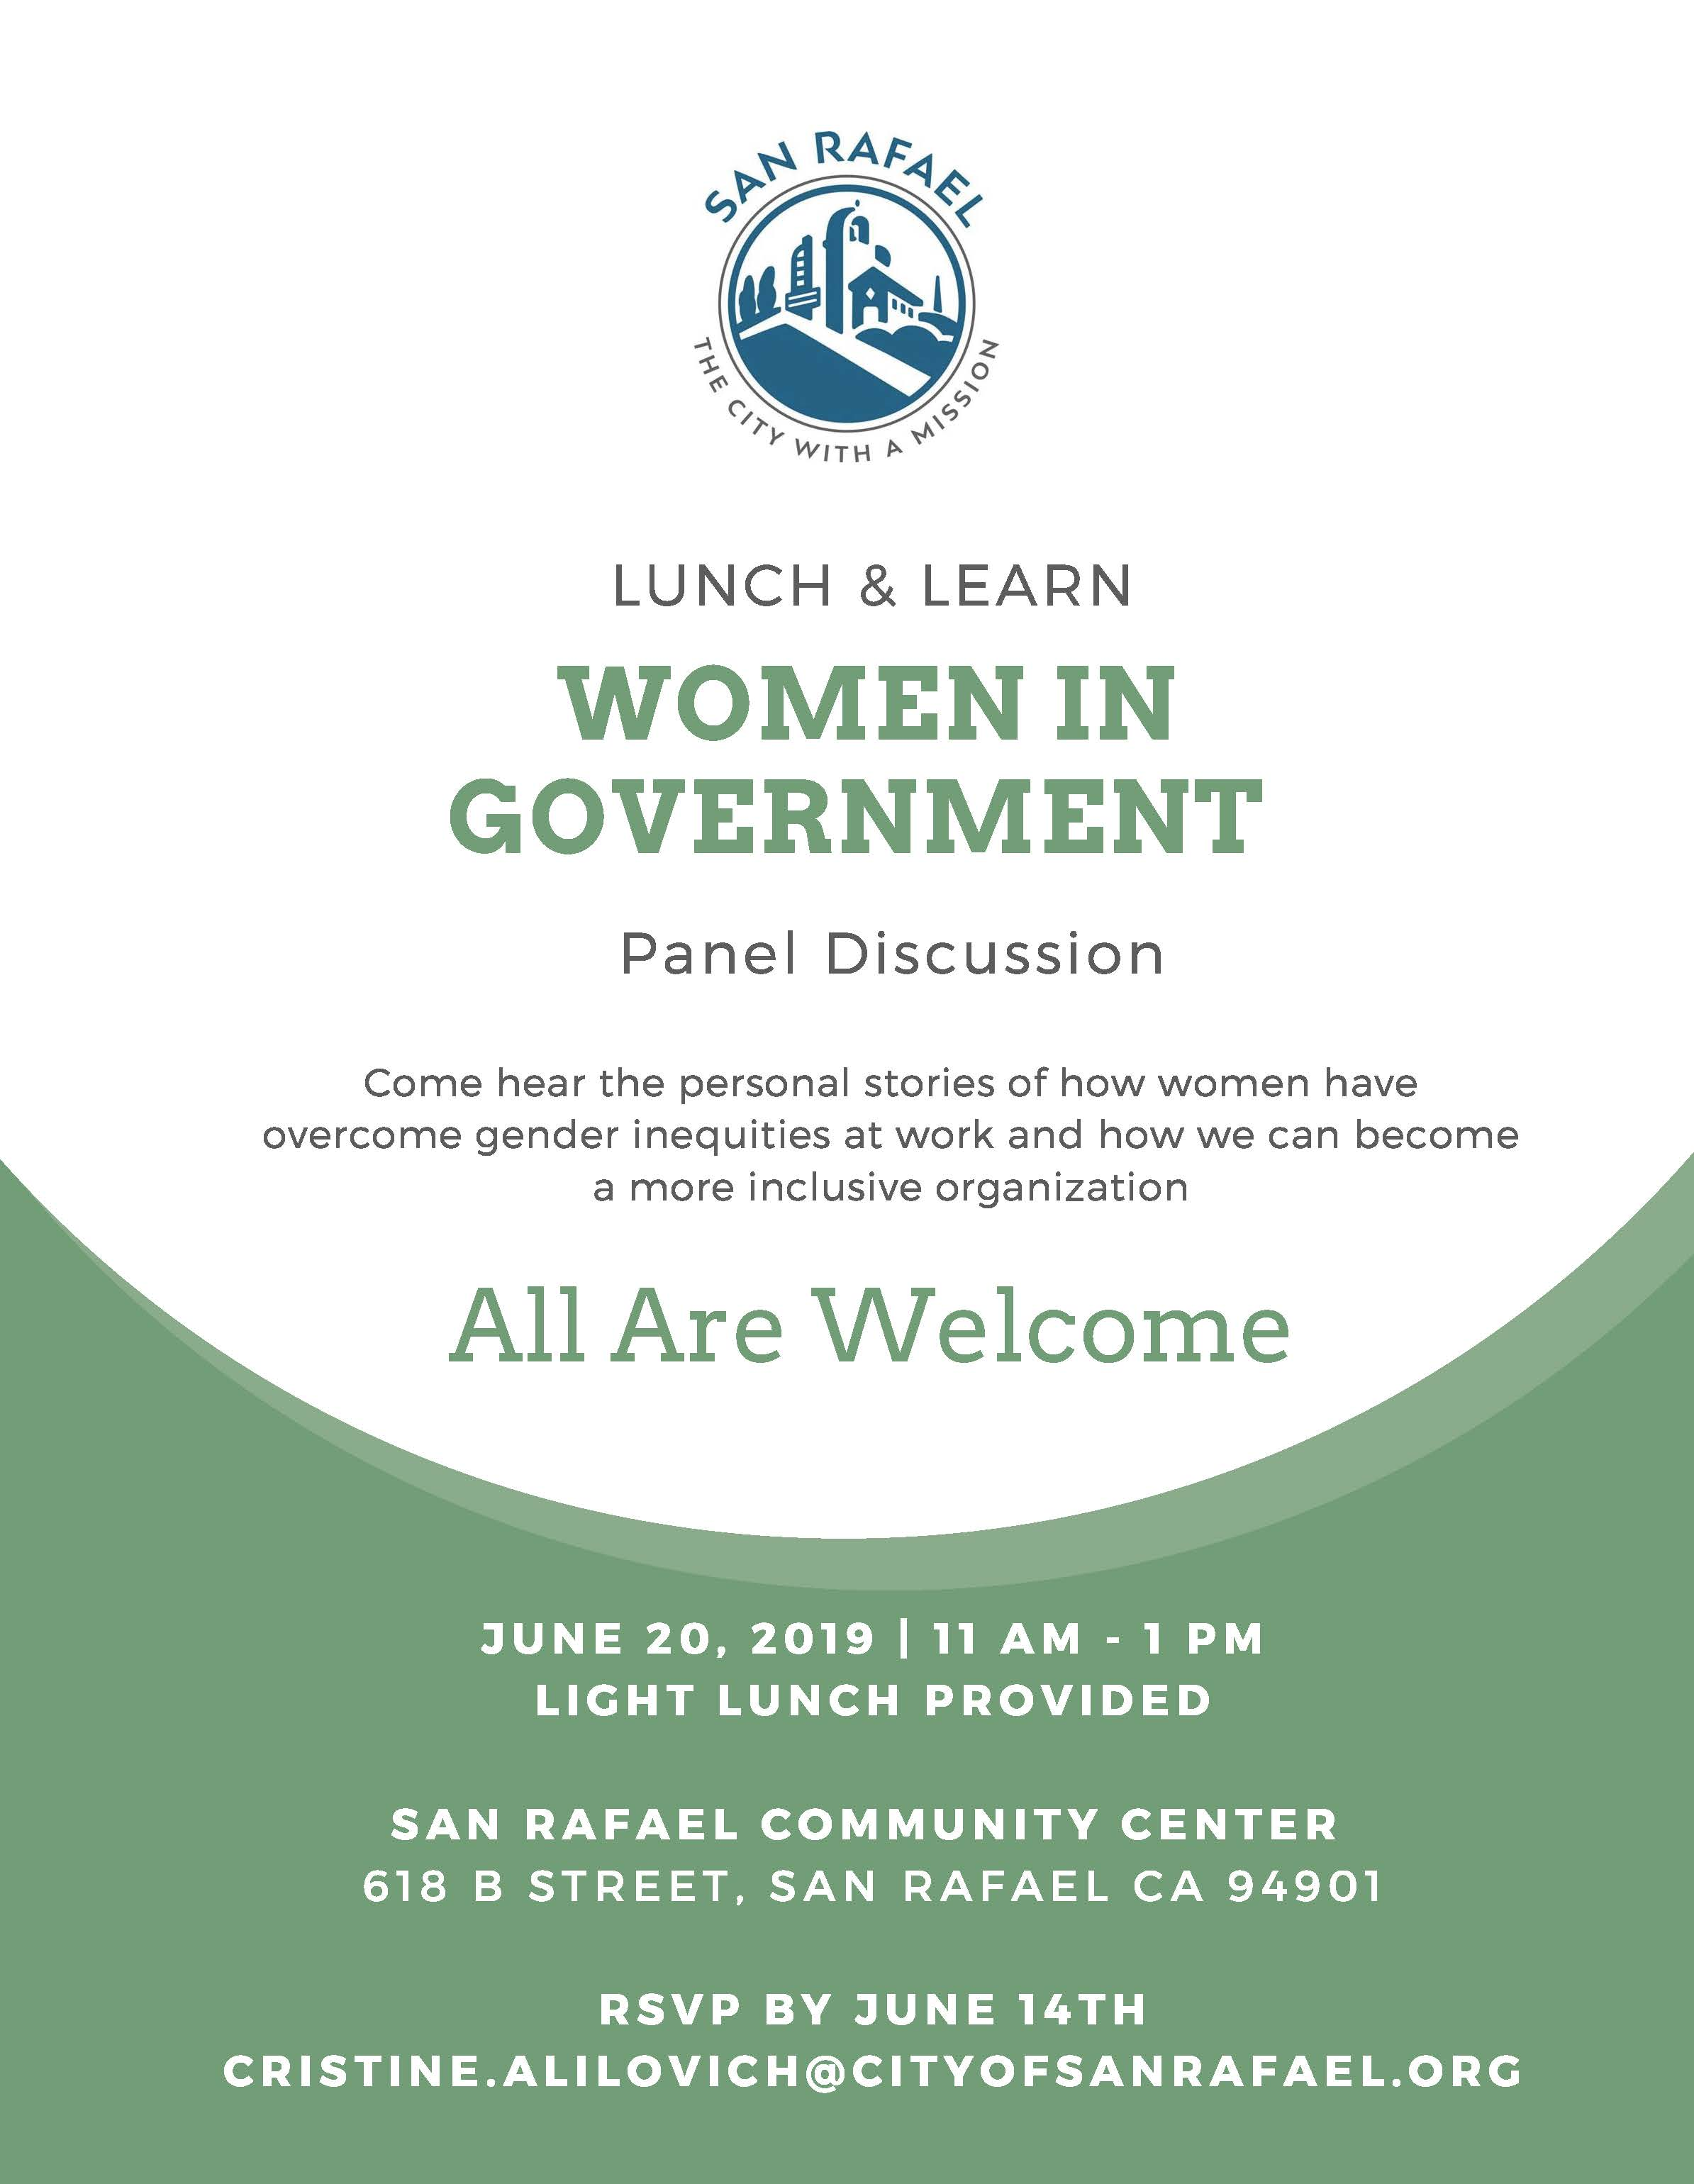 Women in Government - Lunch & Learn